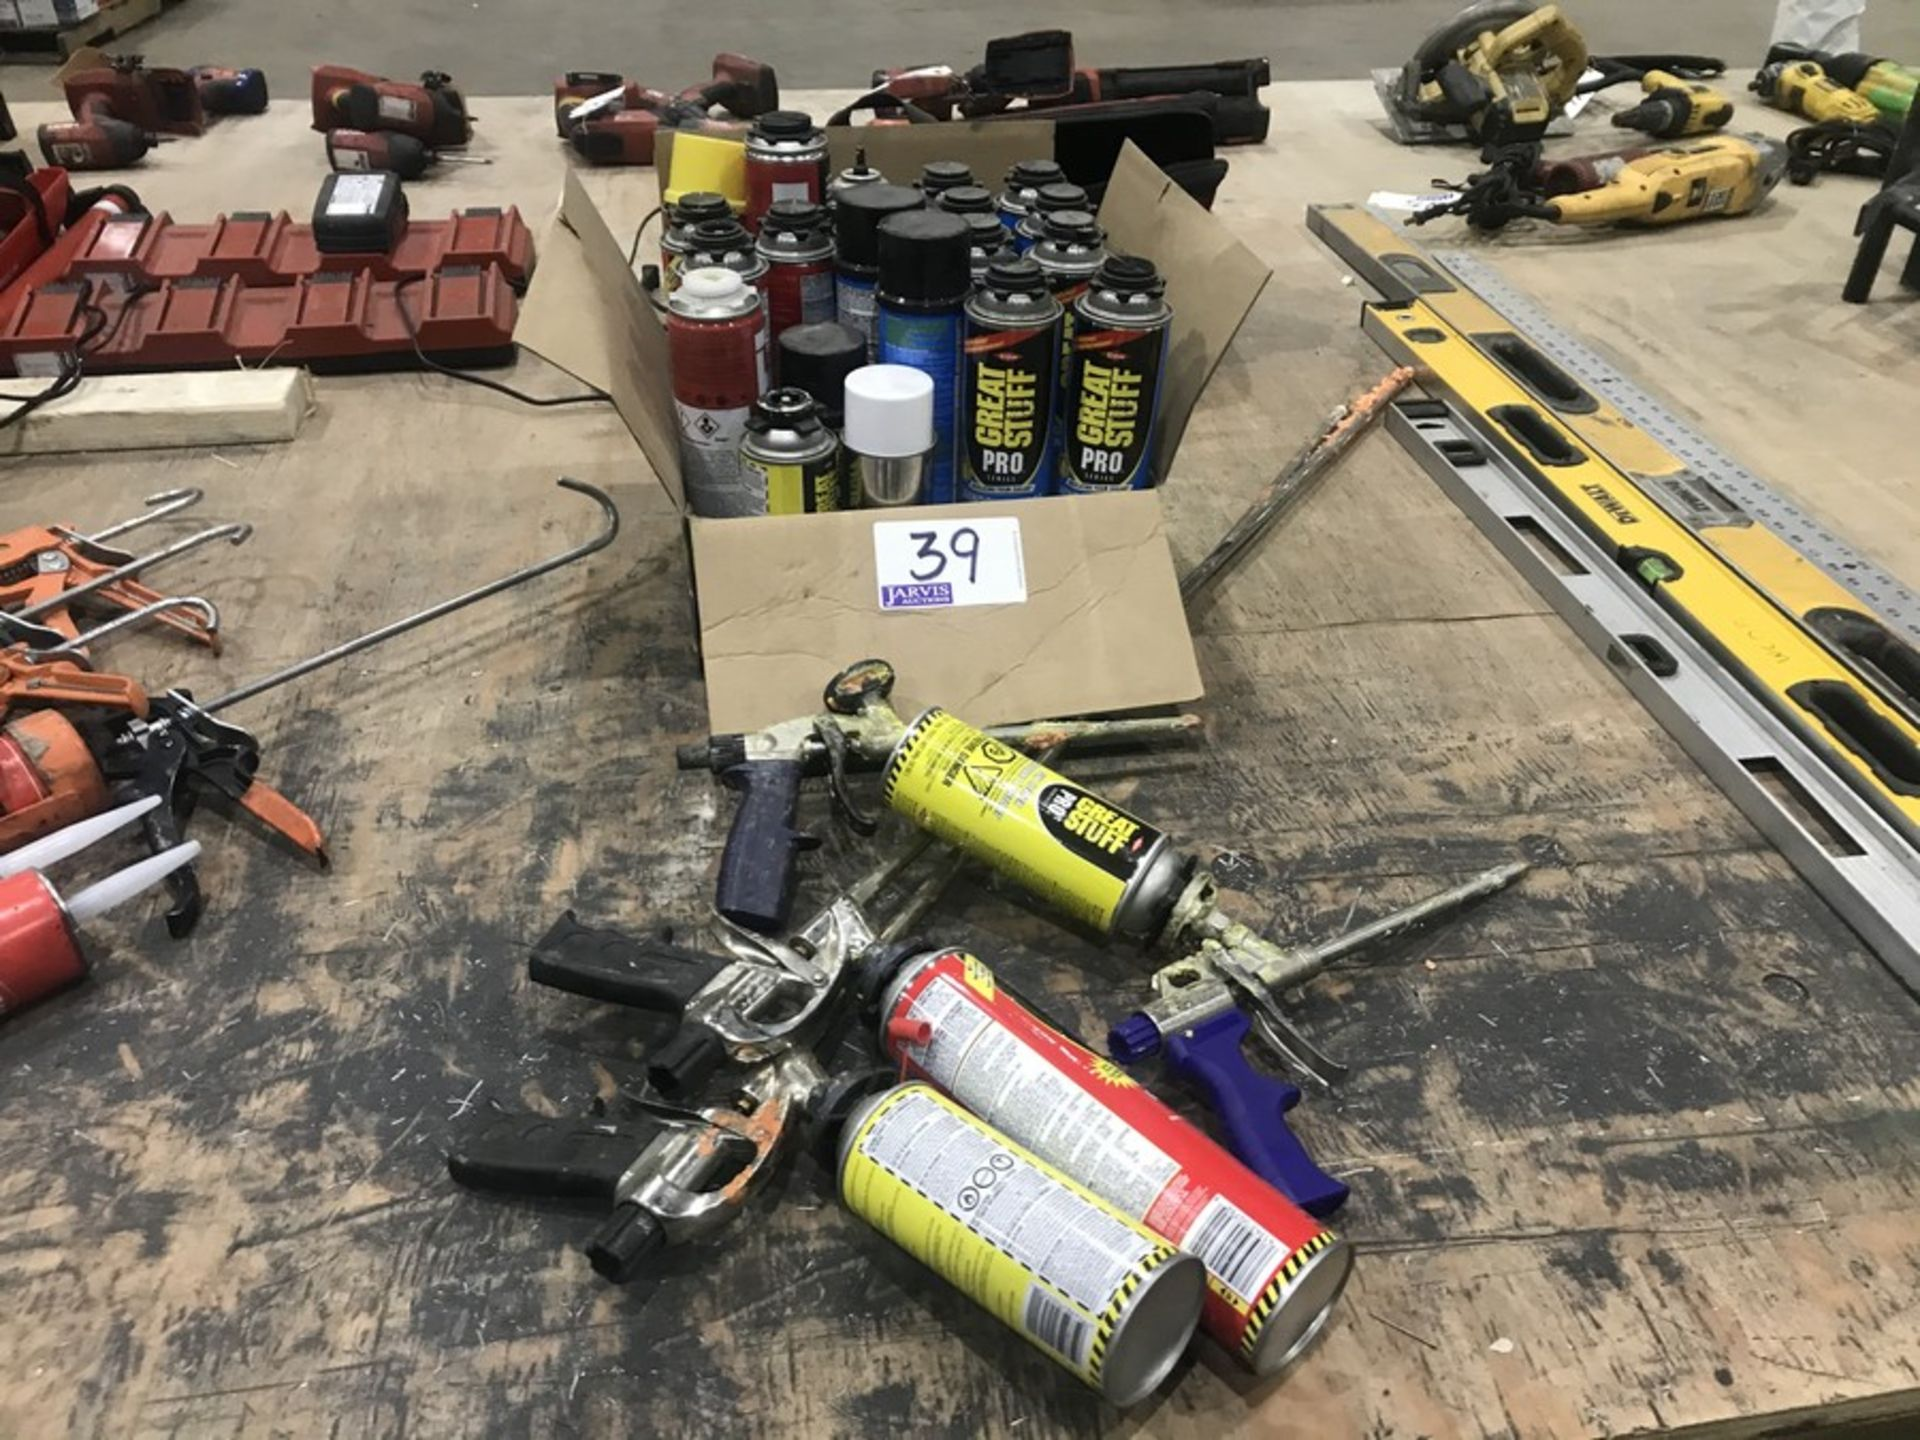 Lot 39 - ADHESIVE SPRAYERS & SUPPLIES